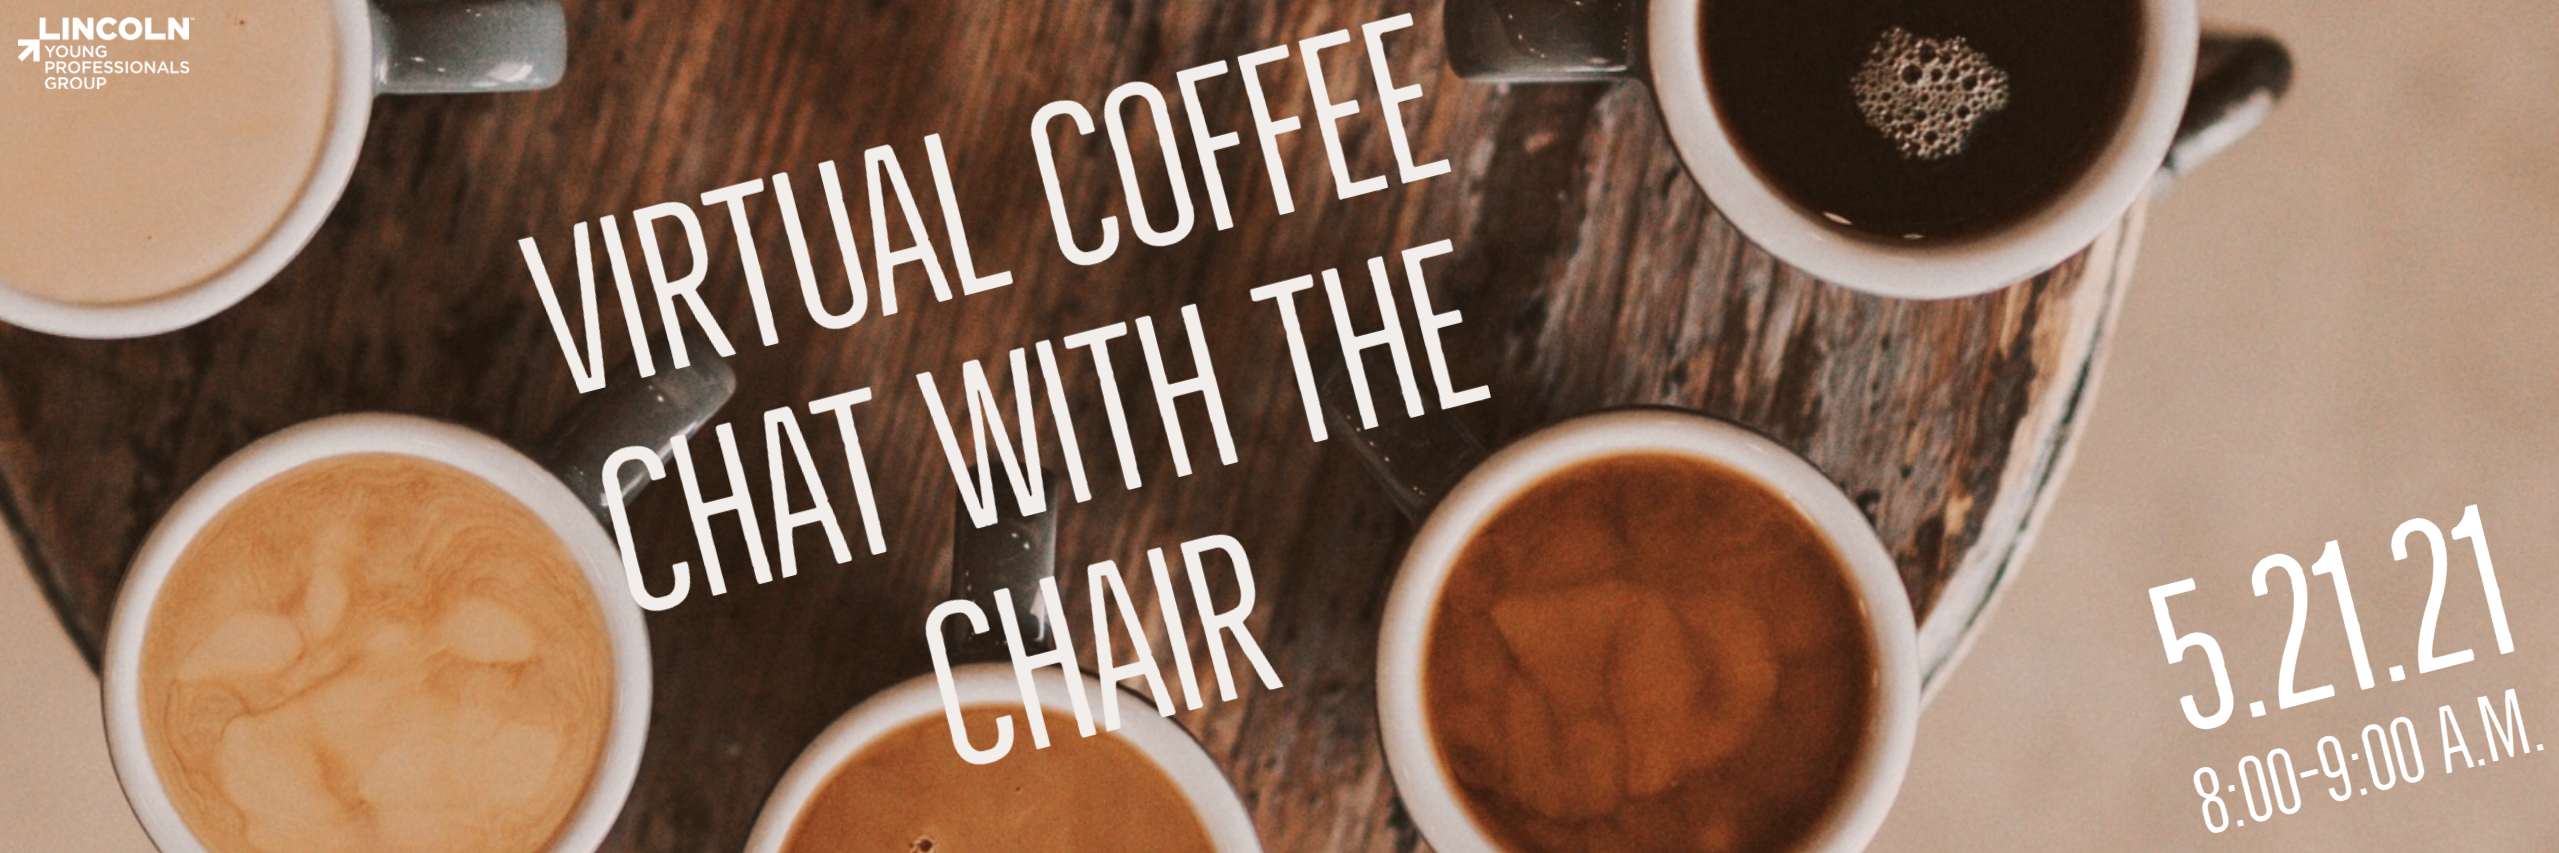 Coffee Chat with the Chair Image